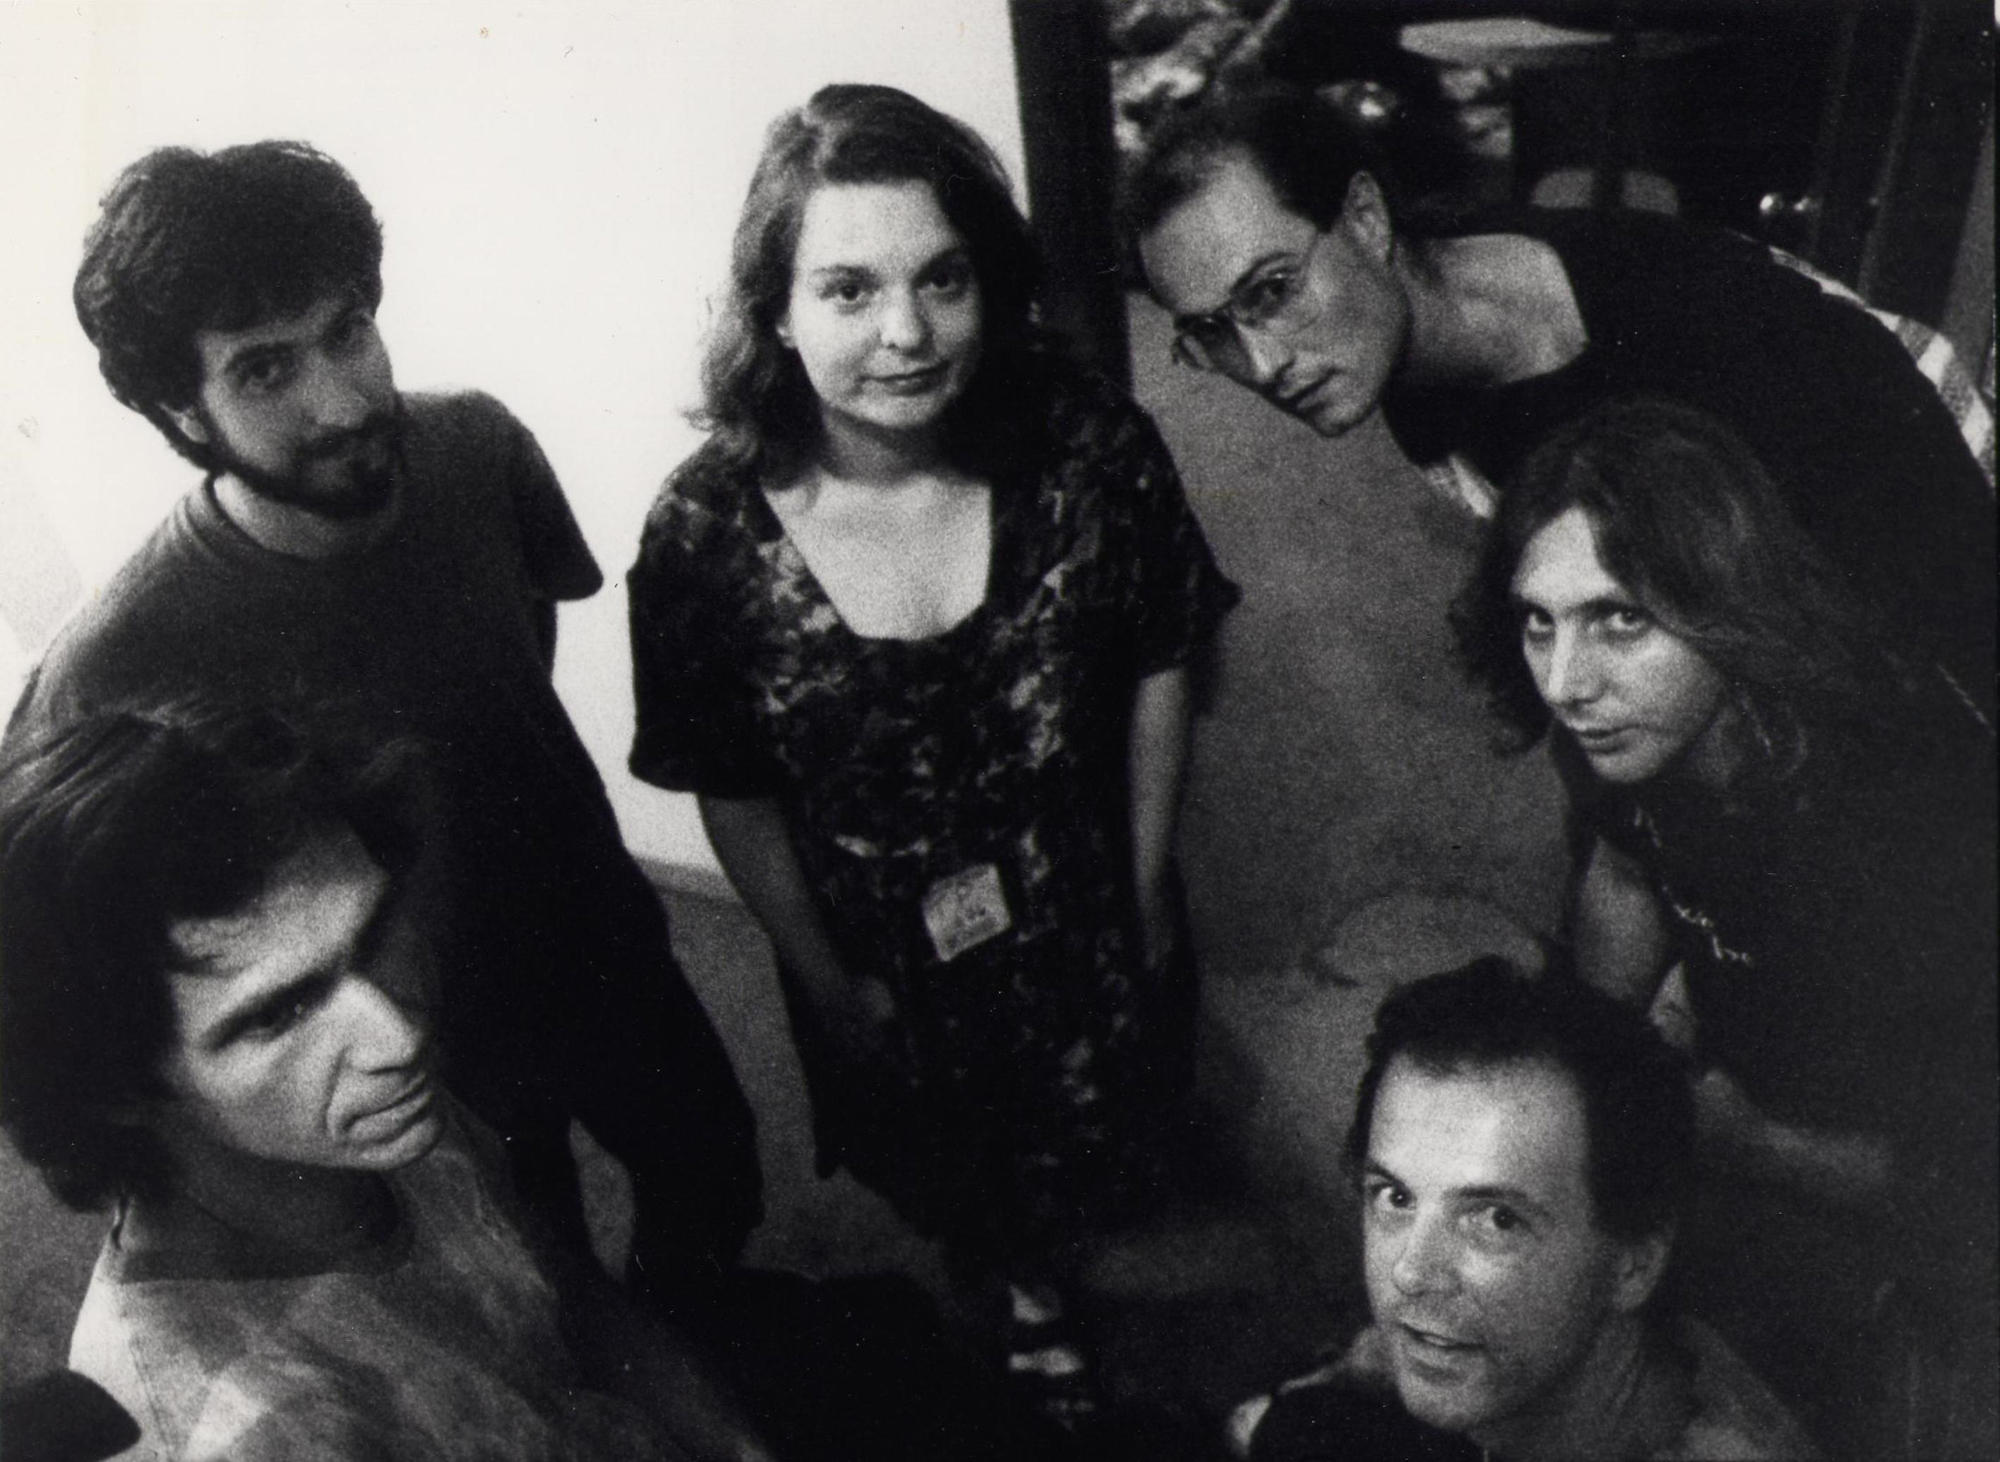 The members of the band Thinking Plague in 1990.